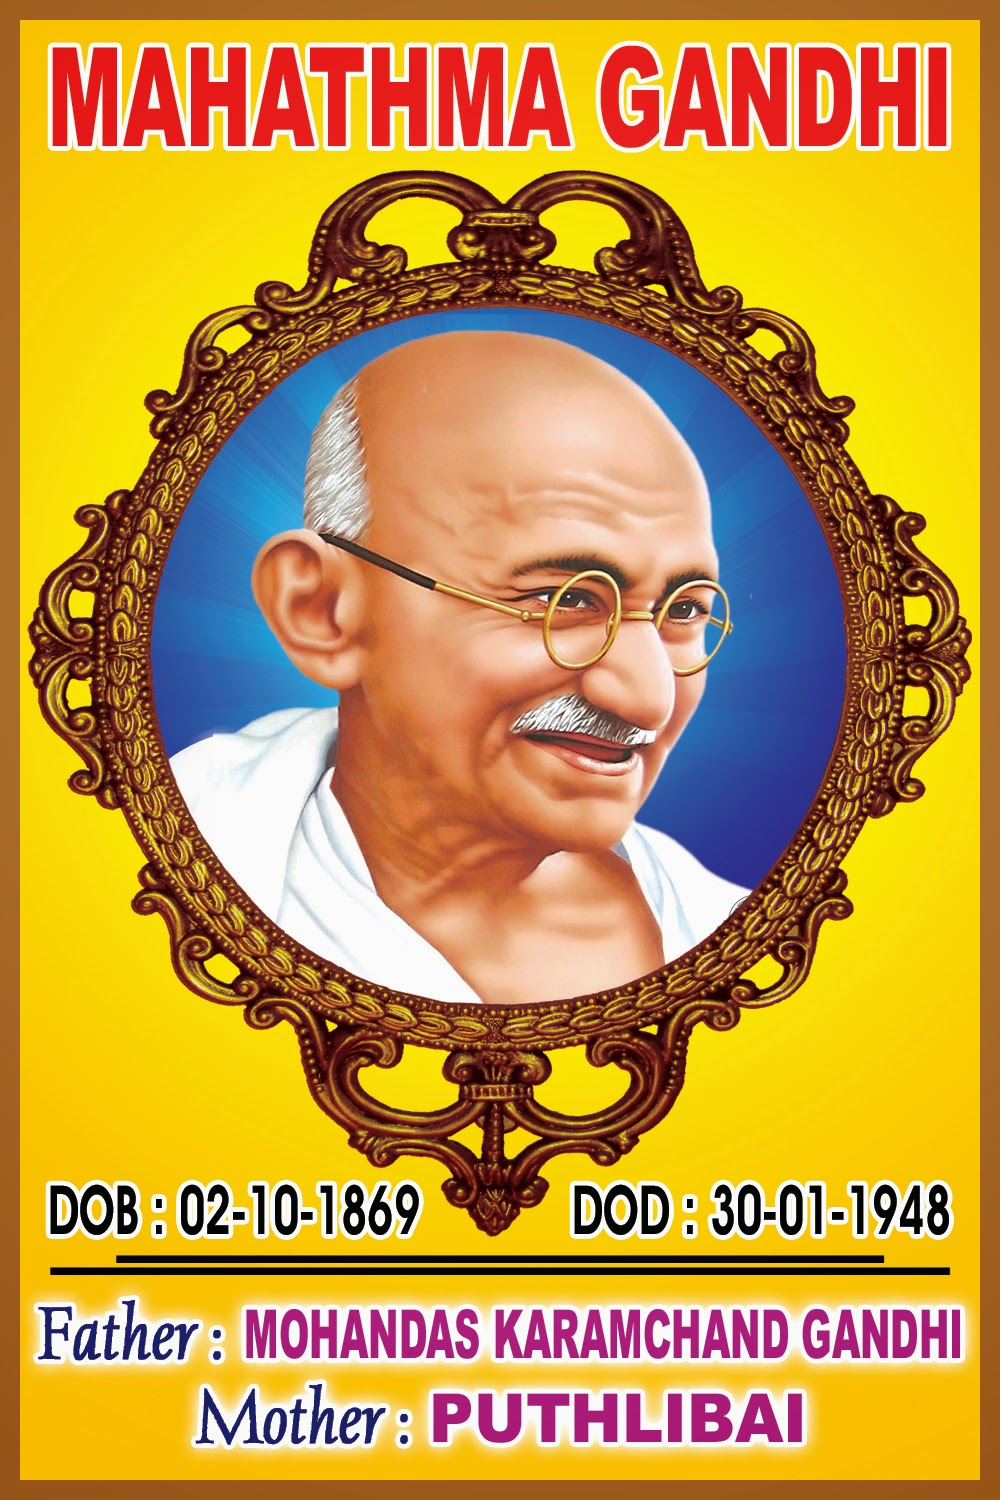 freedom-fighter-mahatma-gandhi-images-with-names-naveengfx.com